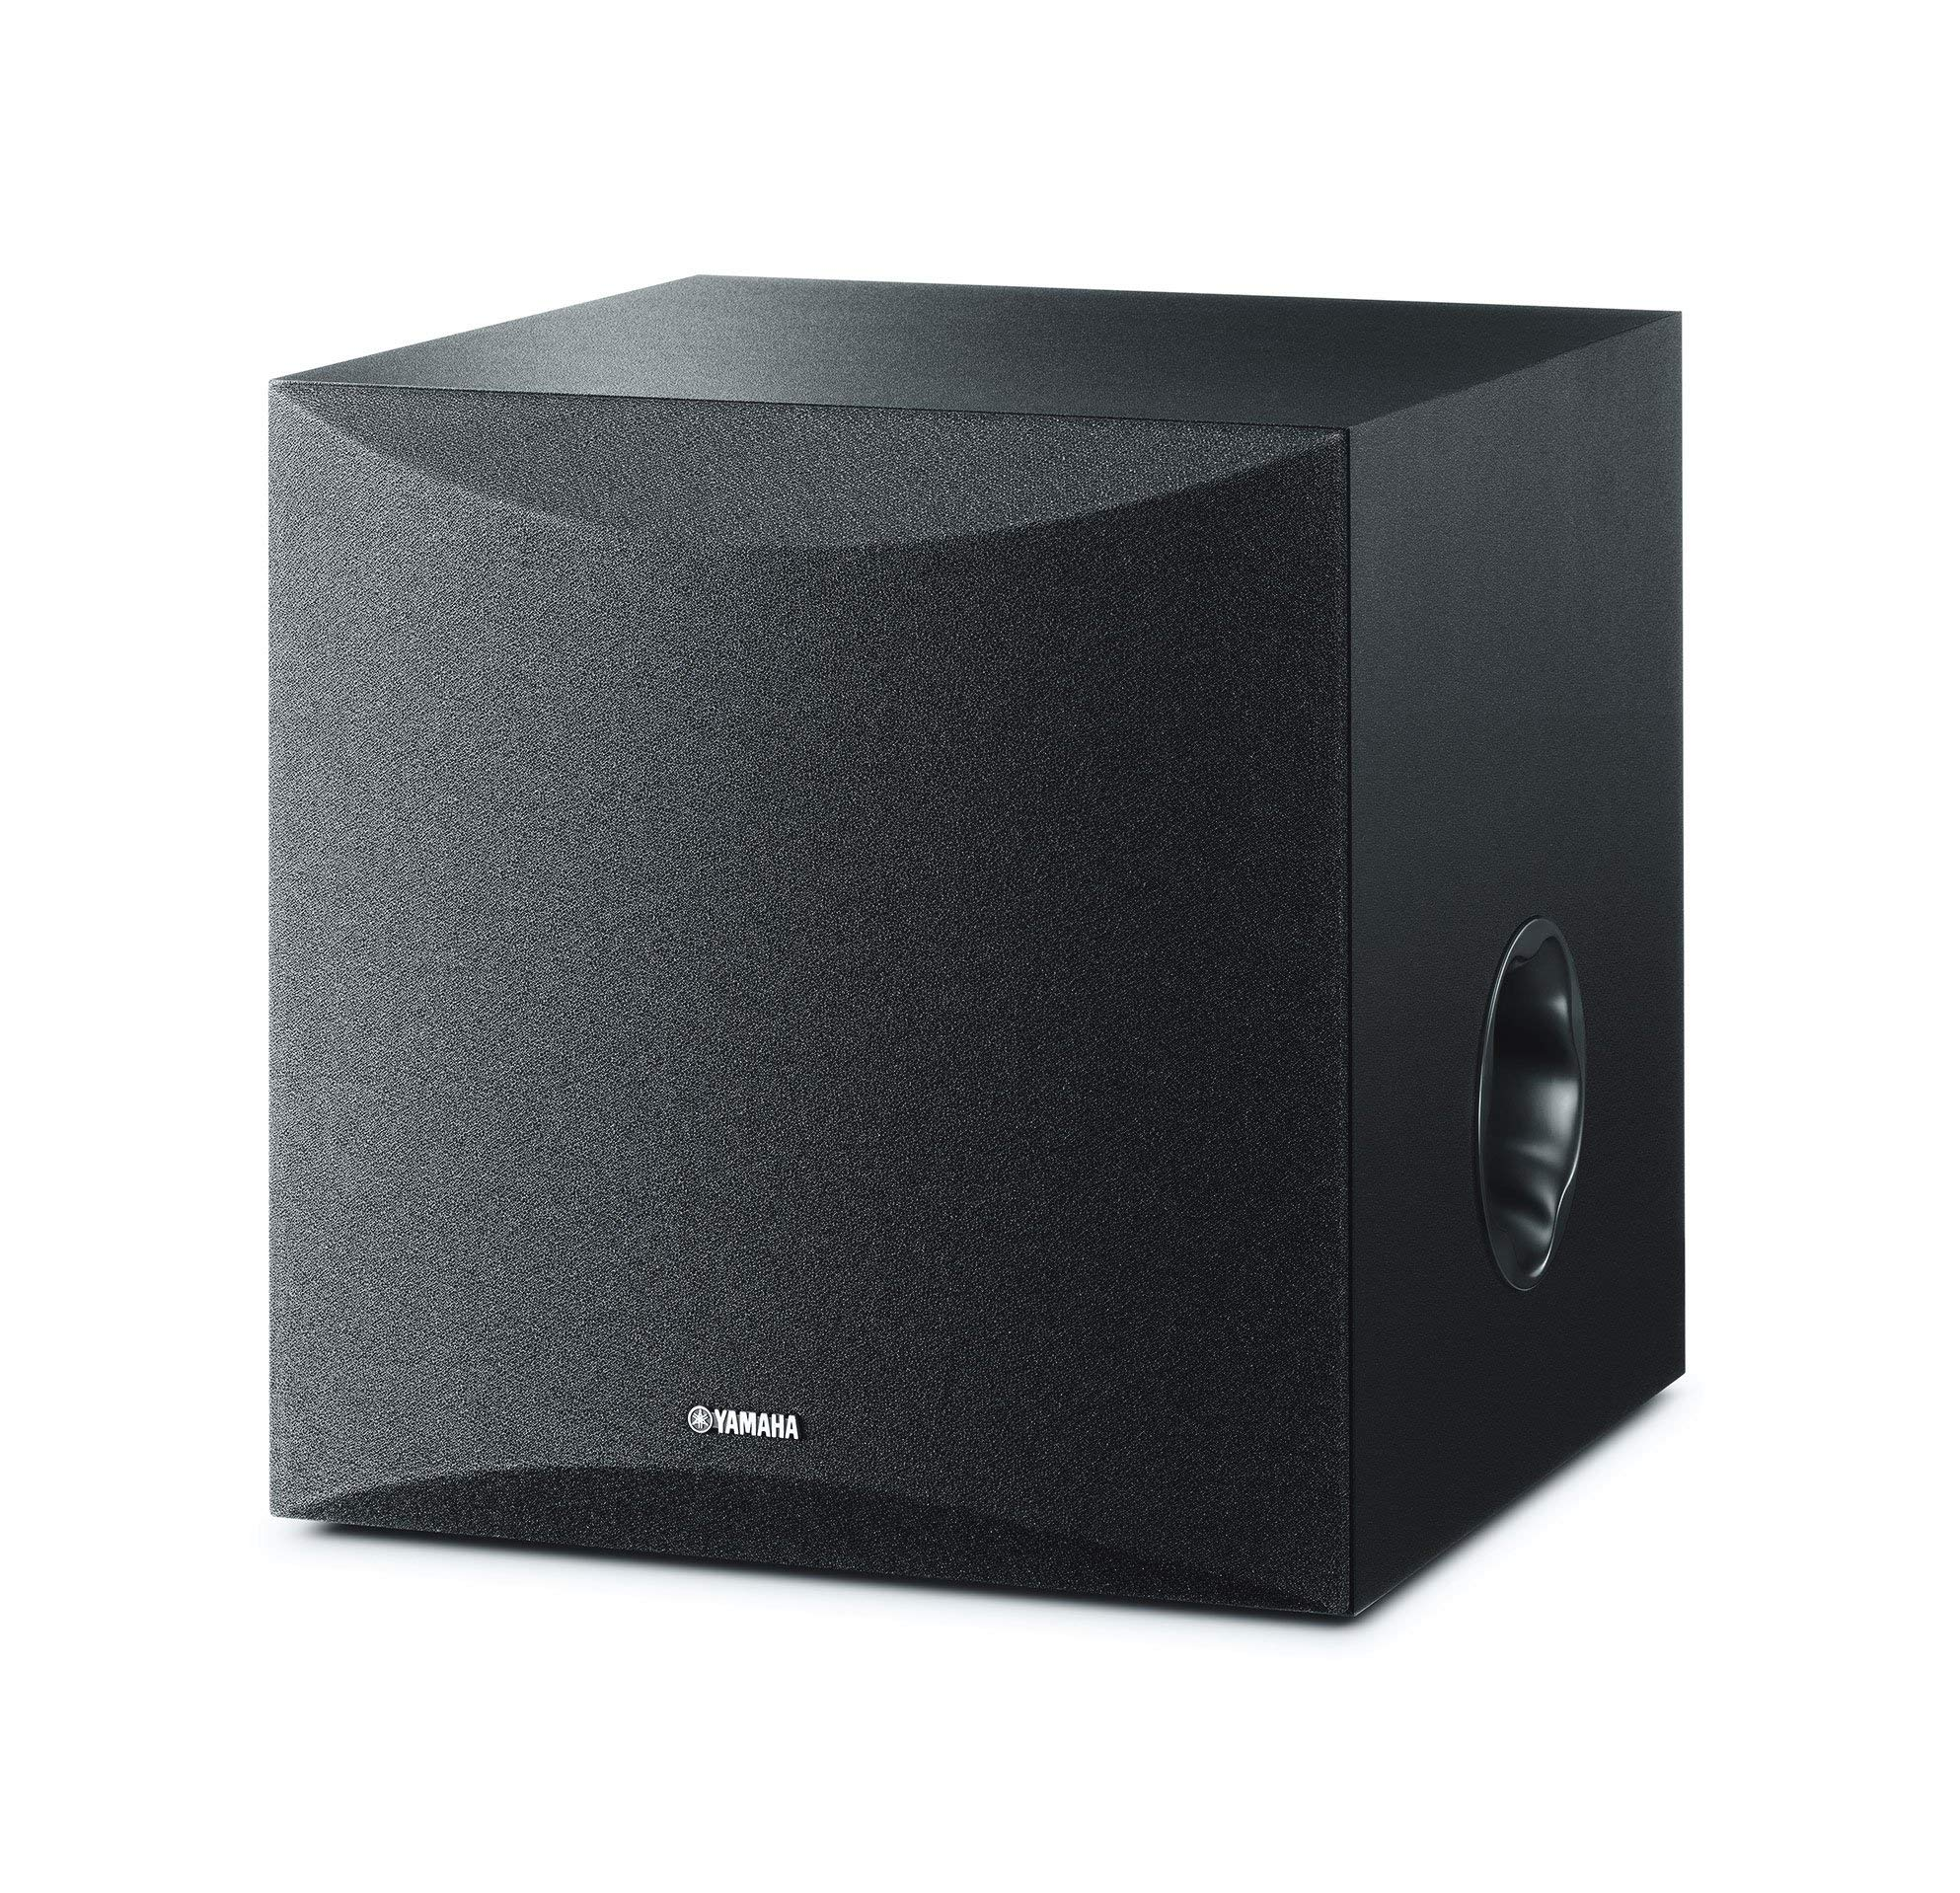 Yamaha 8in 100W Powered Subwoofer - Black (NS-SW050BL) (Renewed) by Yamaha Audio